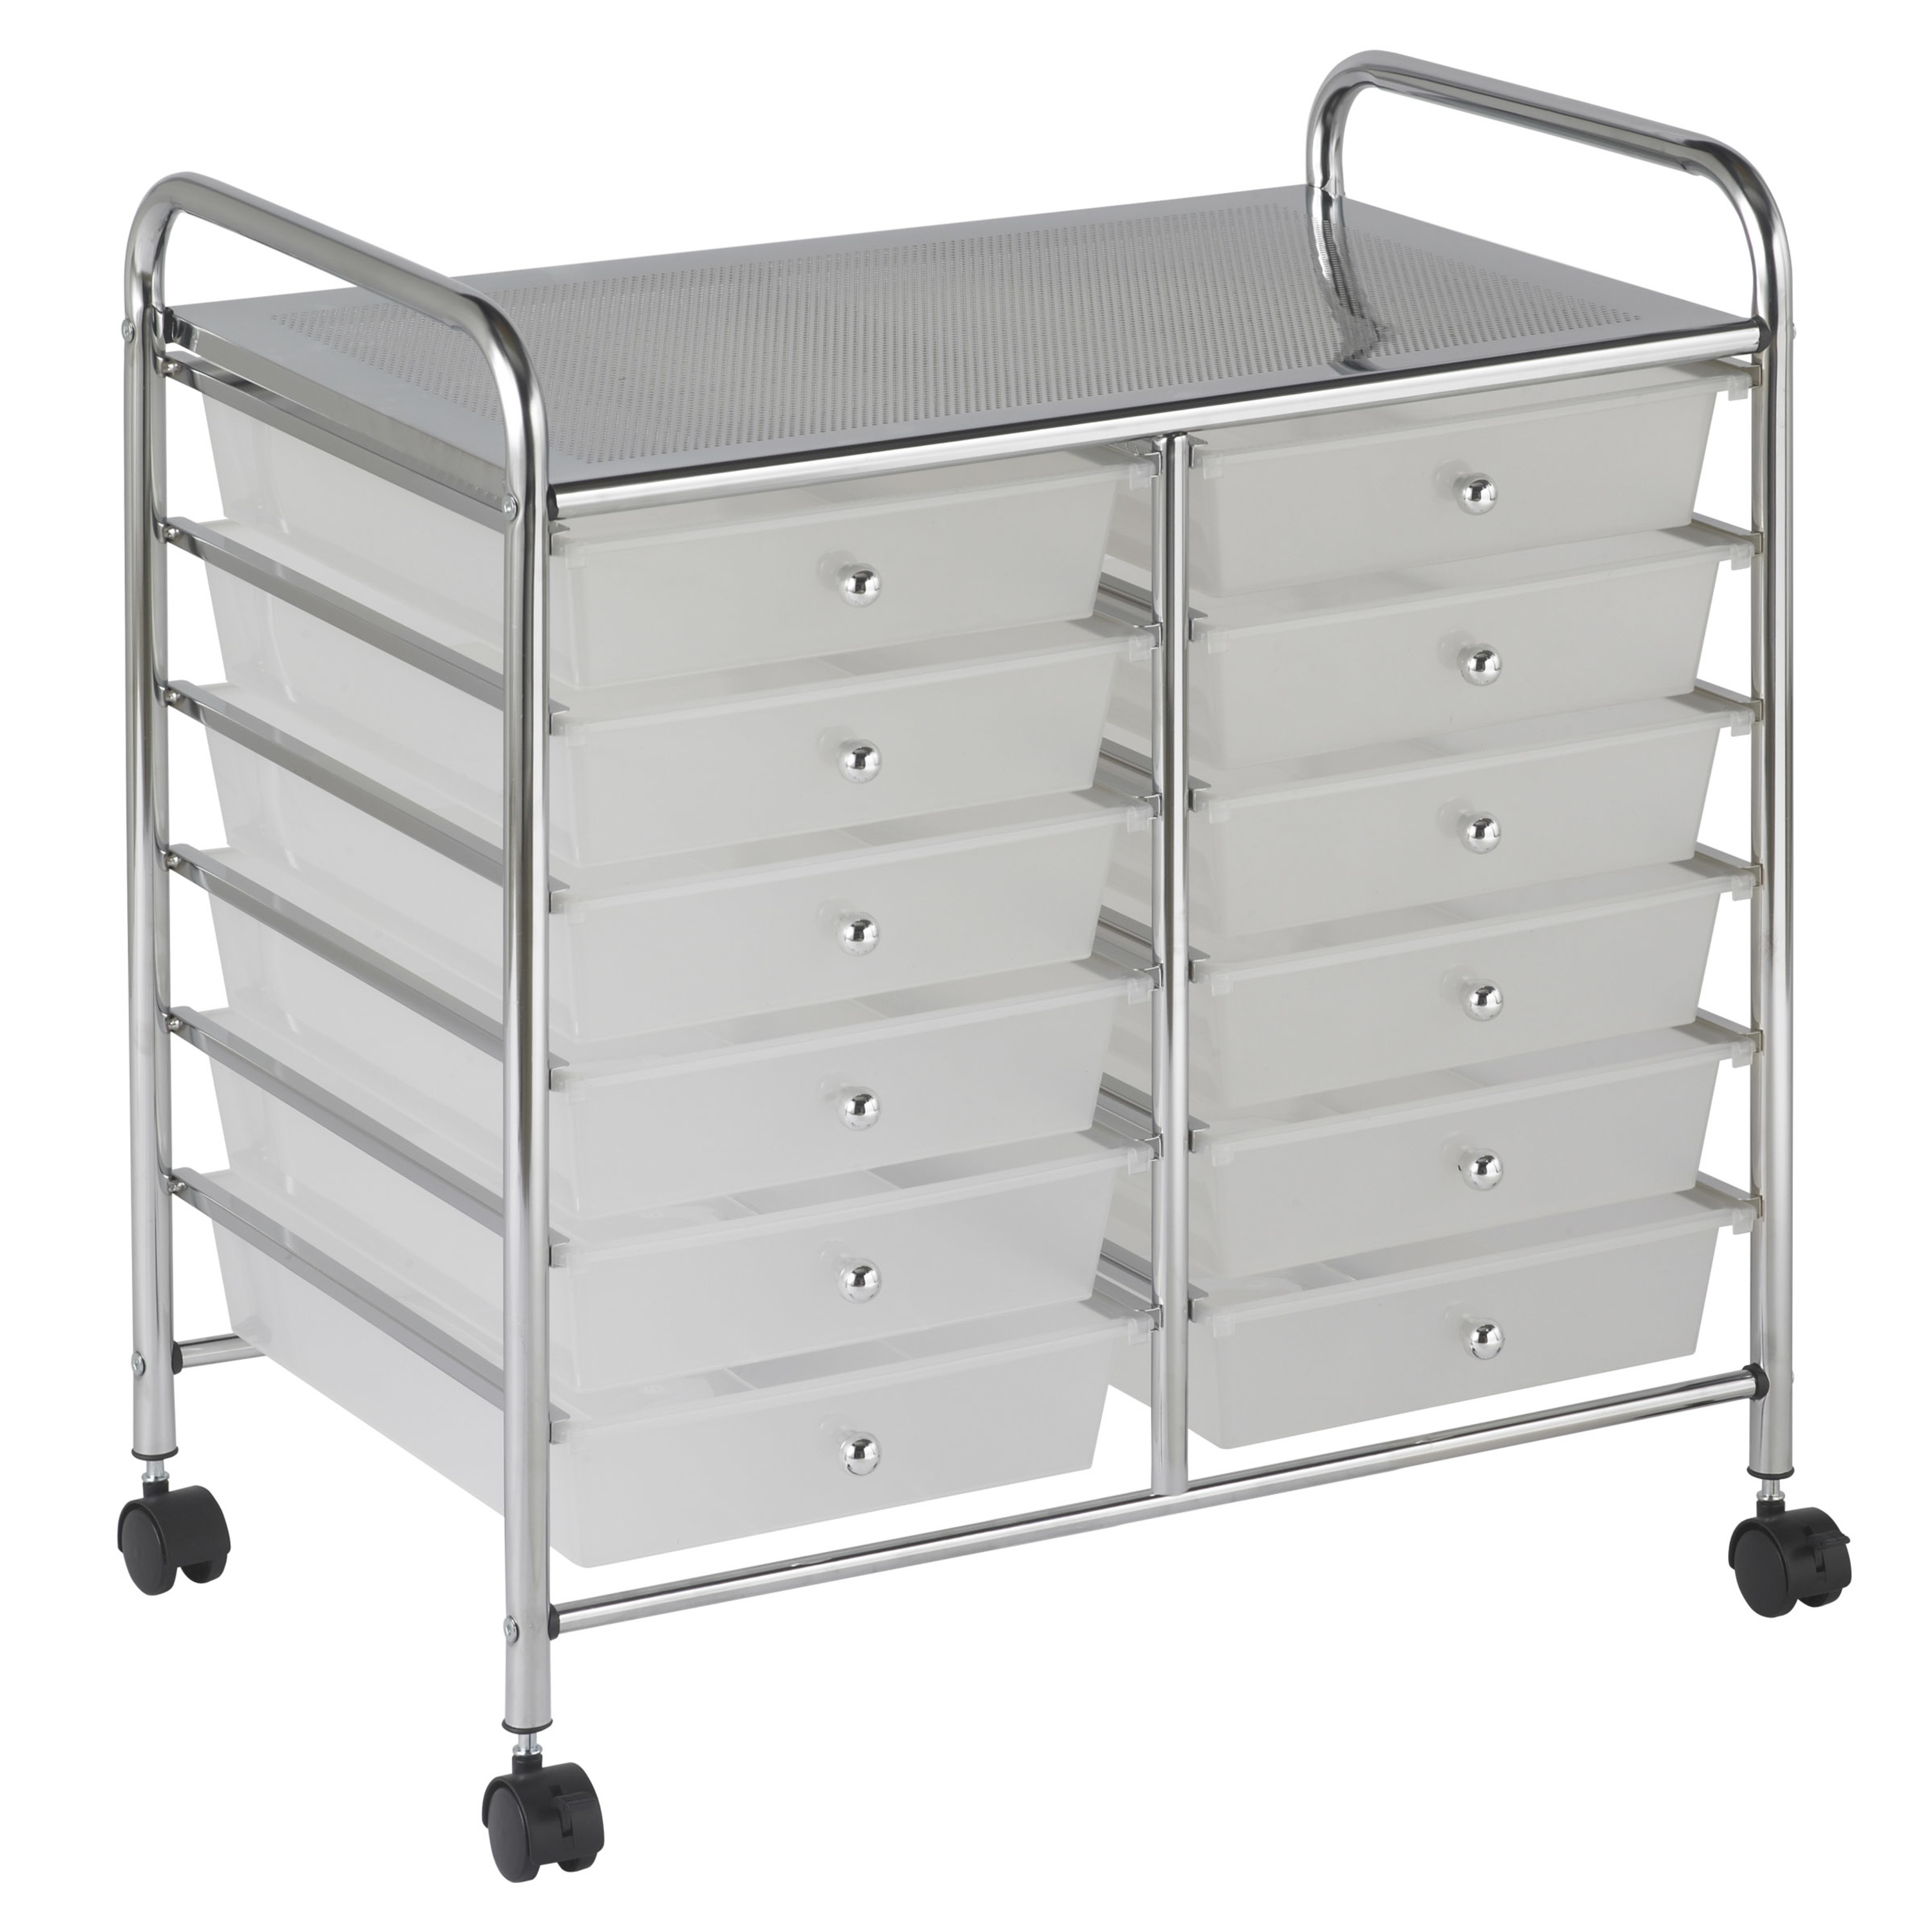 12-Drawer Mobile Organizer - Multiple Colors